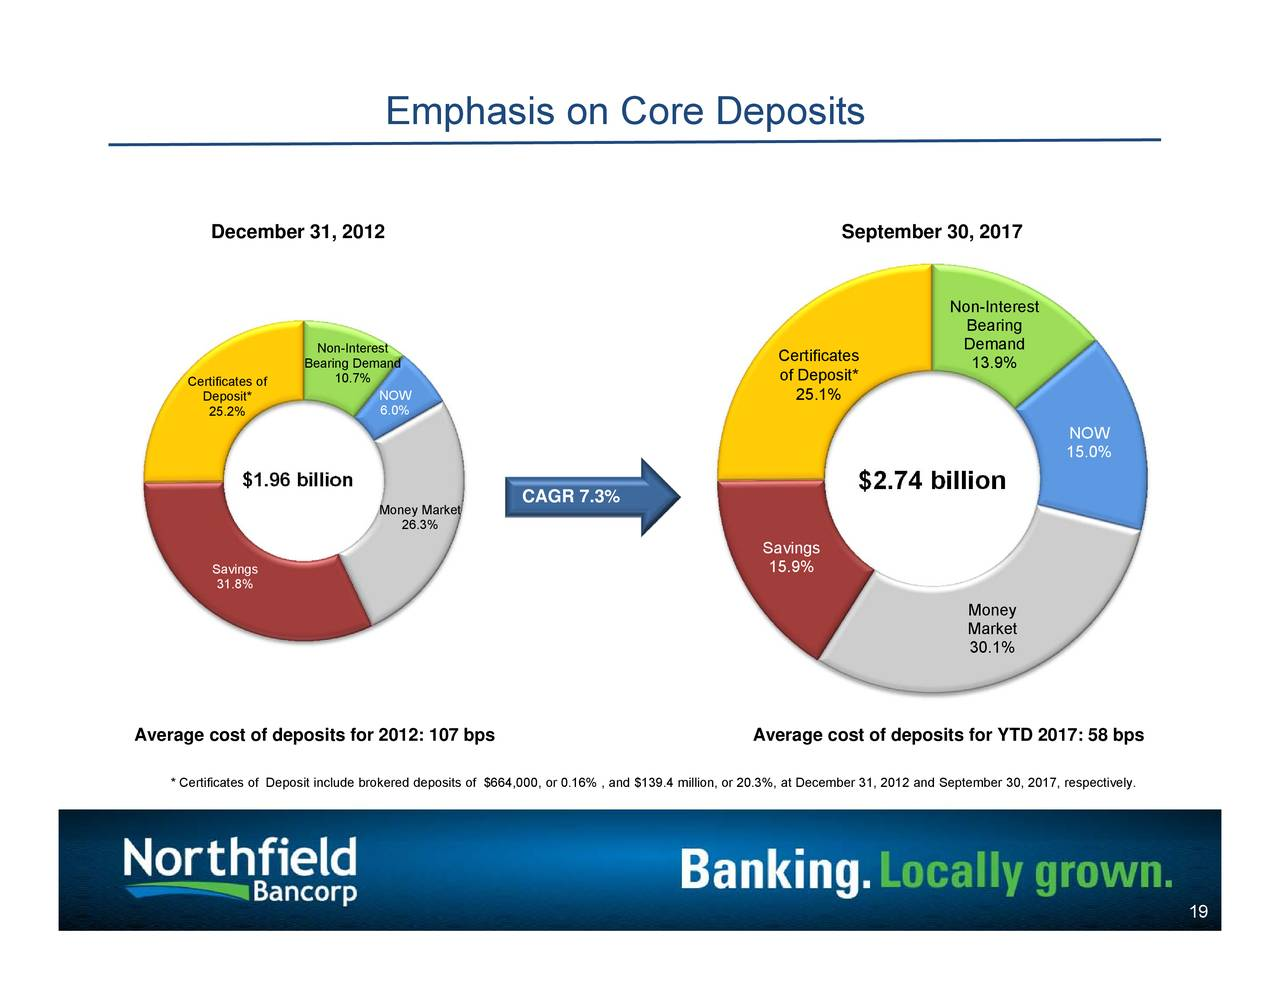 Northfield bancorp nfbk presents at 2017 east coast financial northfield bancorp nfbk presents at 2017 east coast financial services conference slideshow northfield bancorp inc nasdaqnfbk seeking alpha 1betcityfo Image collections